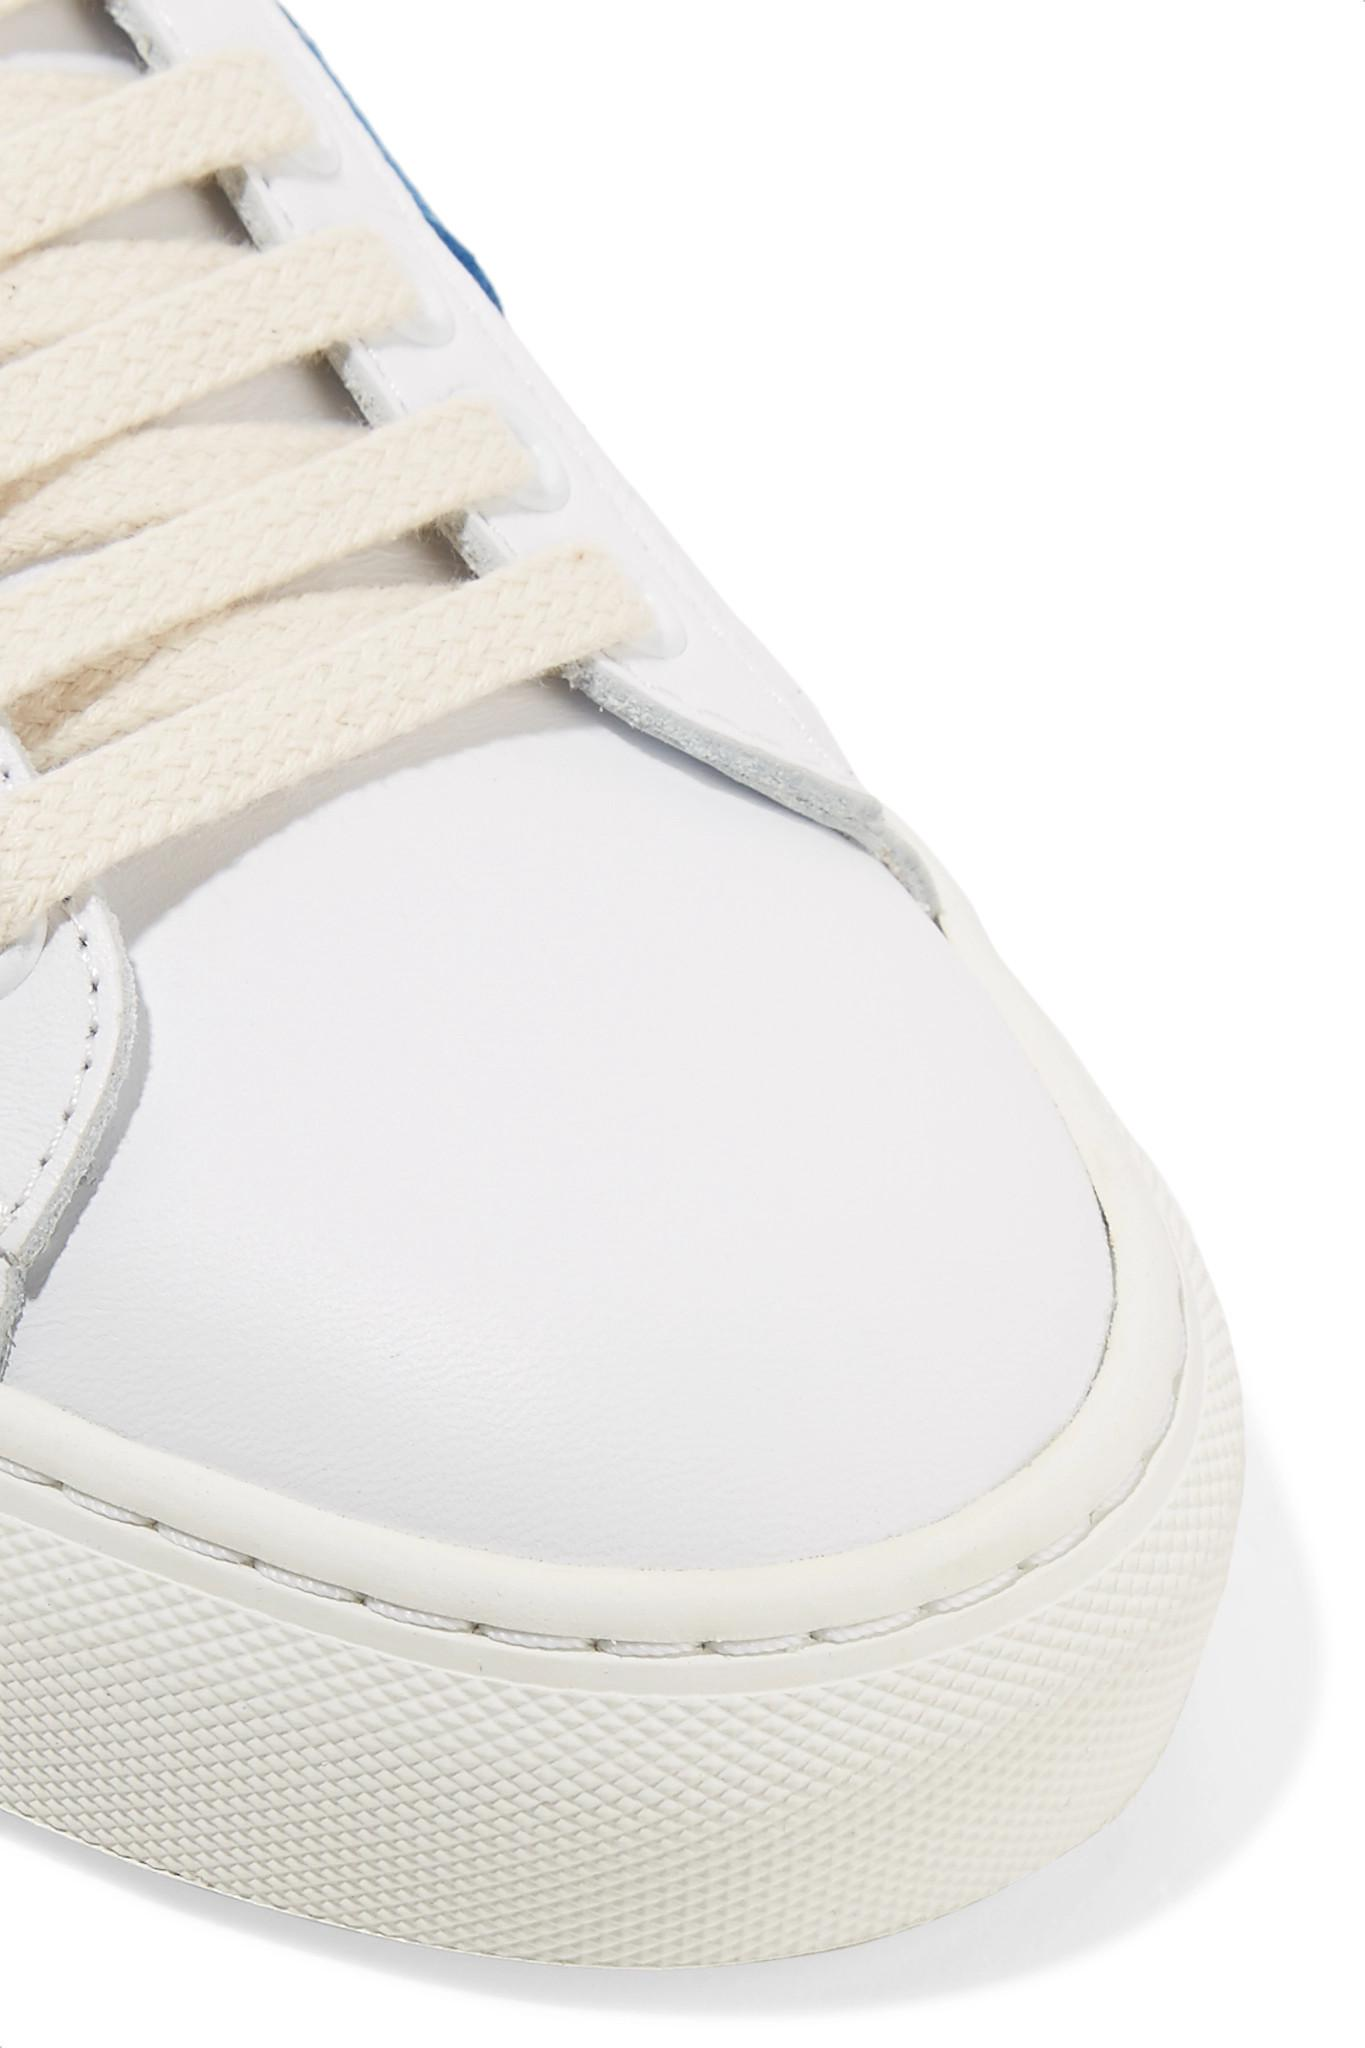 Discount Footaction Striped Suede And Leather Sneakers - White Mira Mikati Buy Best Shop Offer Cheap Online Cheap Footlocker Pictures Manchester Great Sale Cheap Price gUcSP2g5